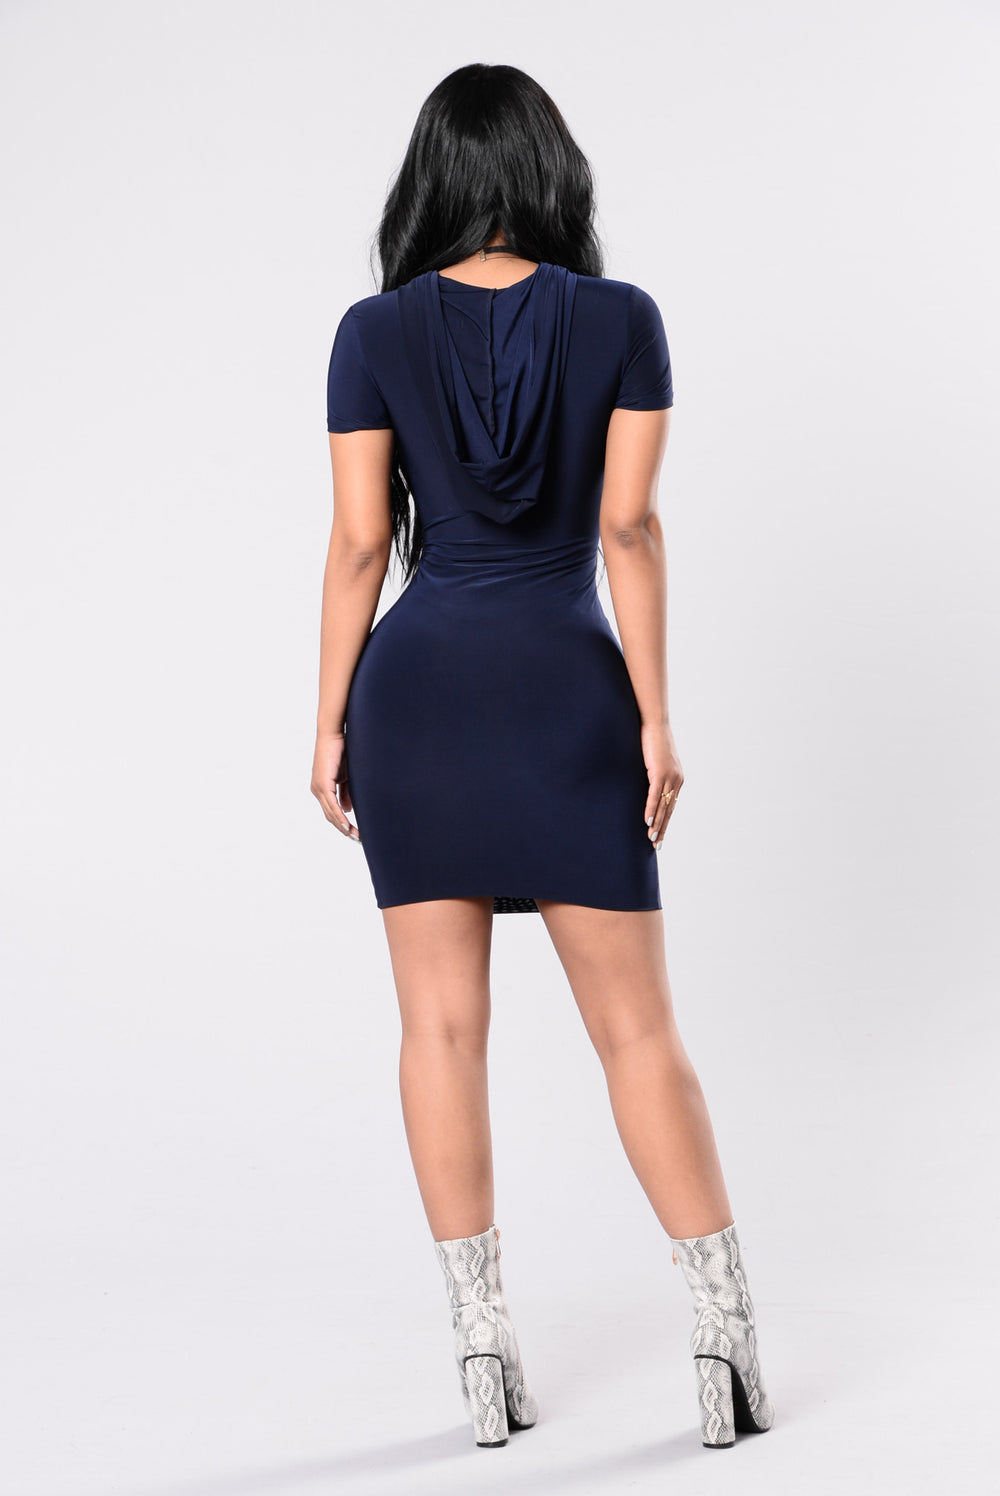 With Or Without You Dress - Dark Navy